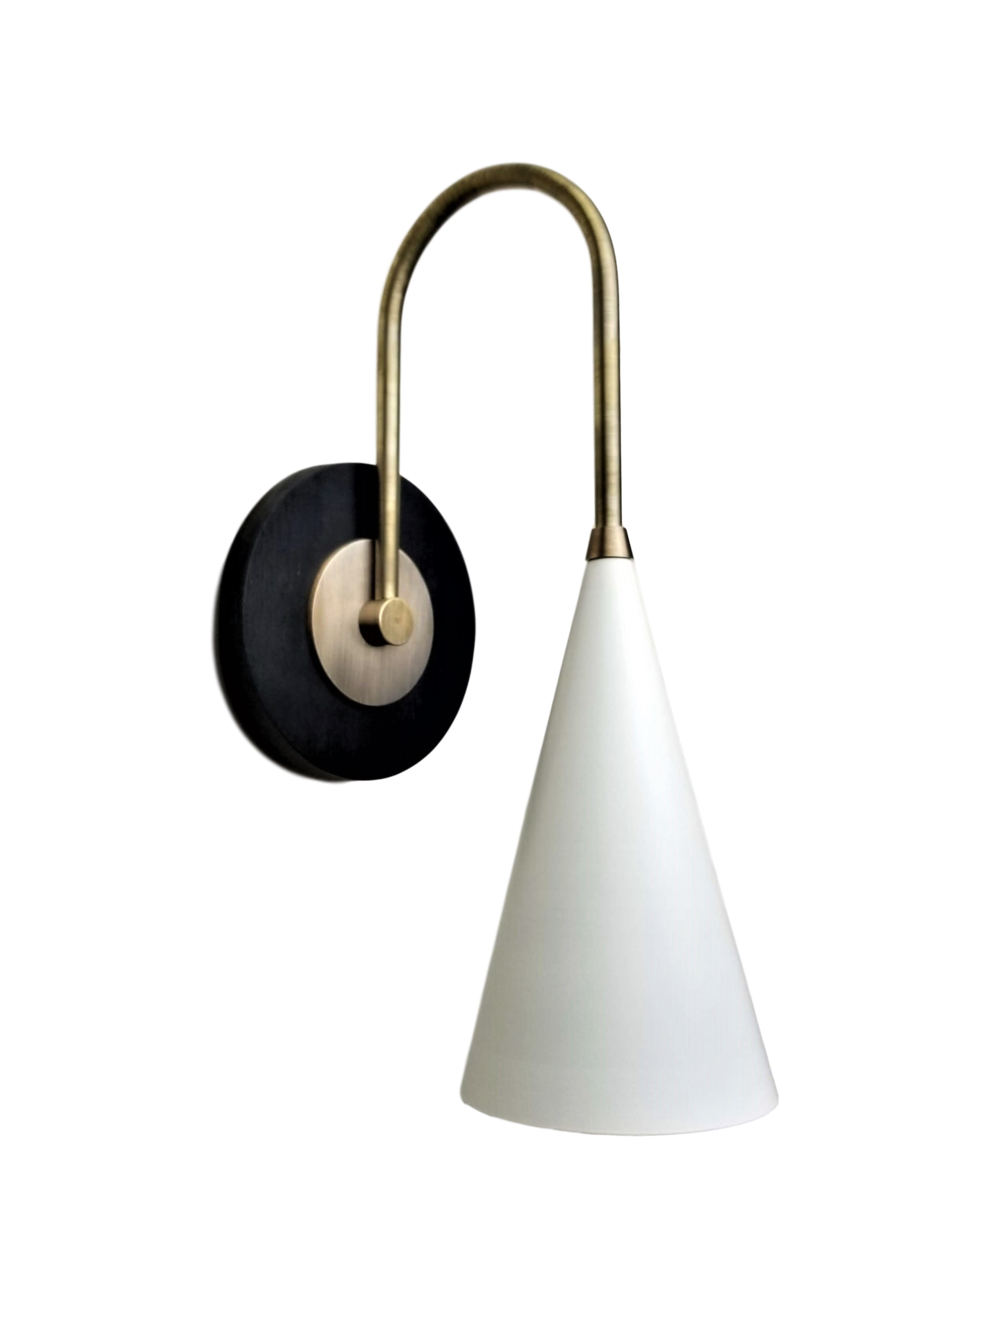 Solana Reading Lamp - $795.00Wall plug with switch(or dimmer) and all metal variants are available. Please inquire about these options.As Shown: Ebony Walnut, Natural Brass, & Perfect White Shade.